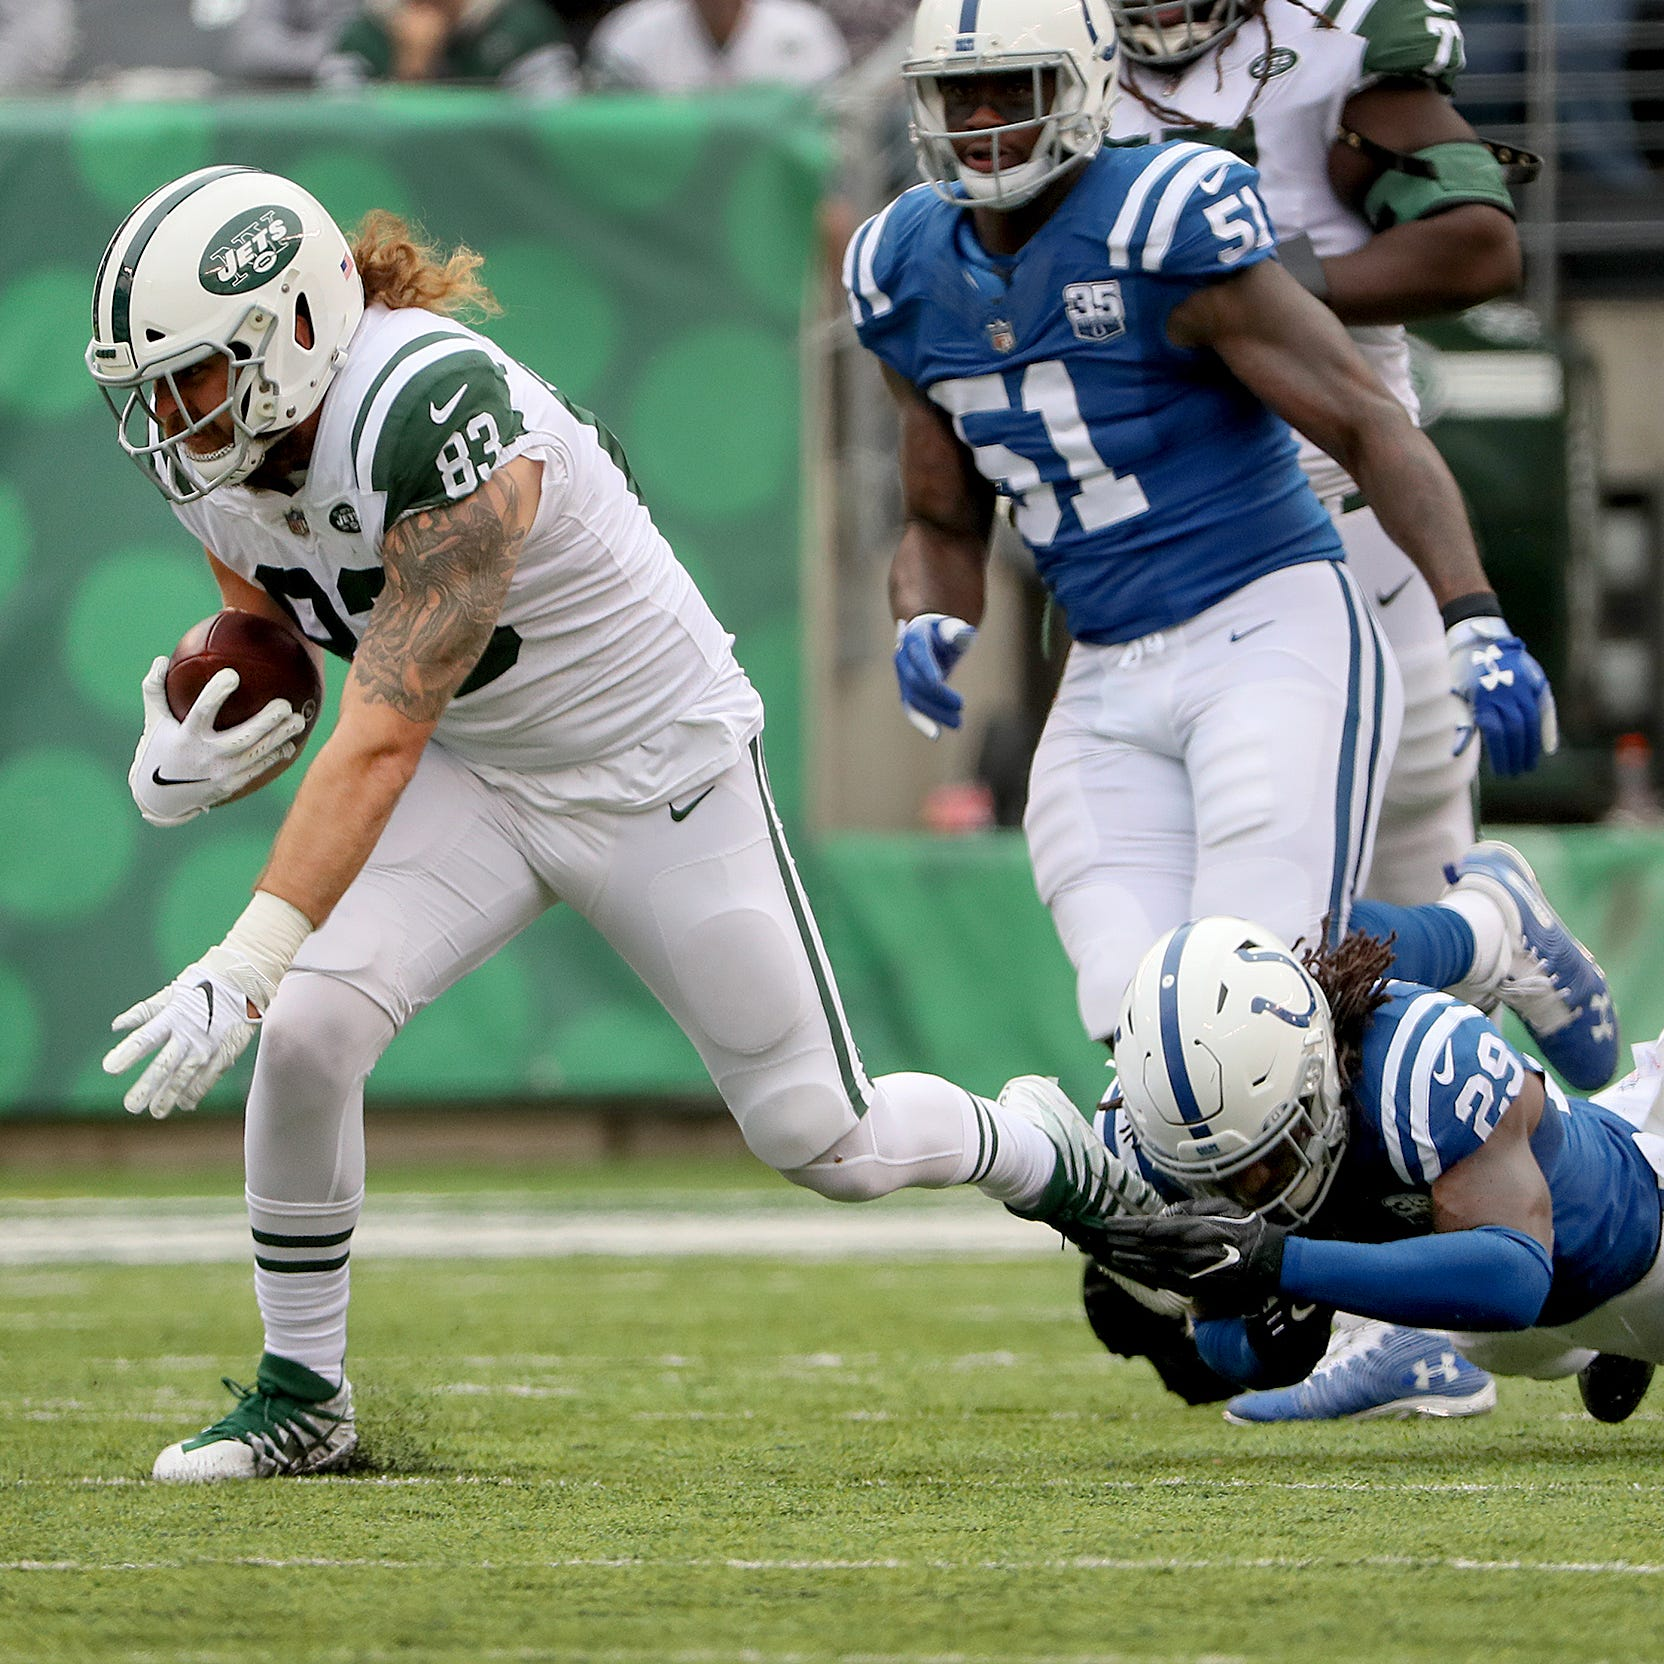 Insider: Colts' defense has a full-blown problem as rookie QB leads Jets to 42-34 victory